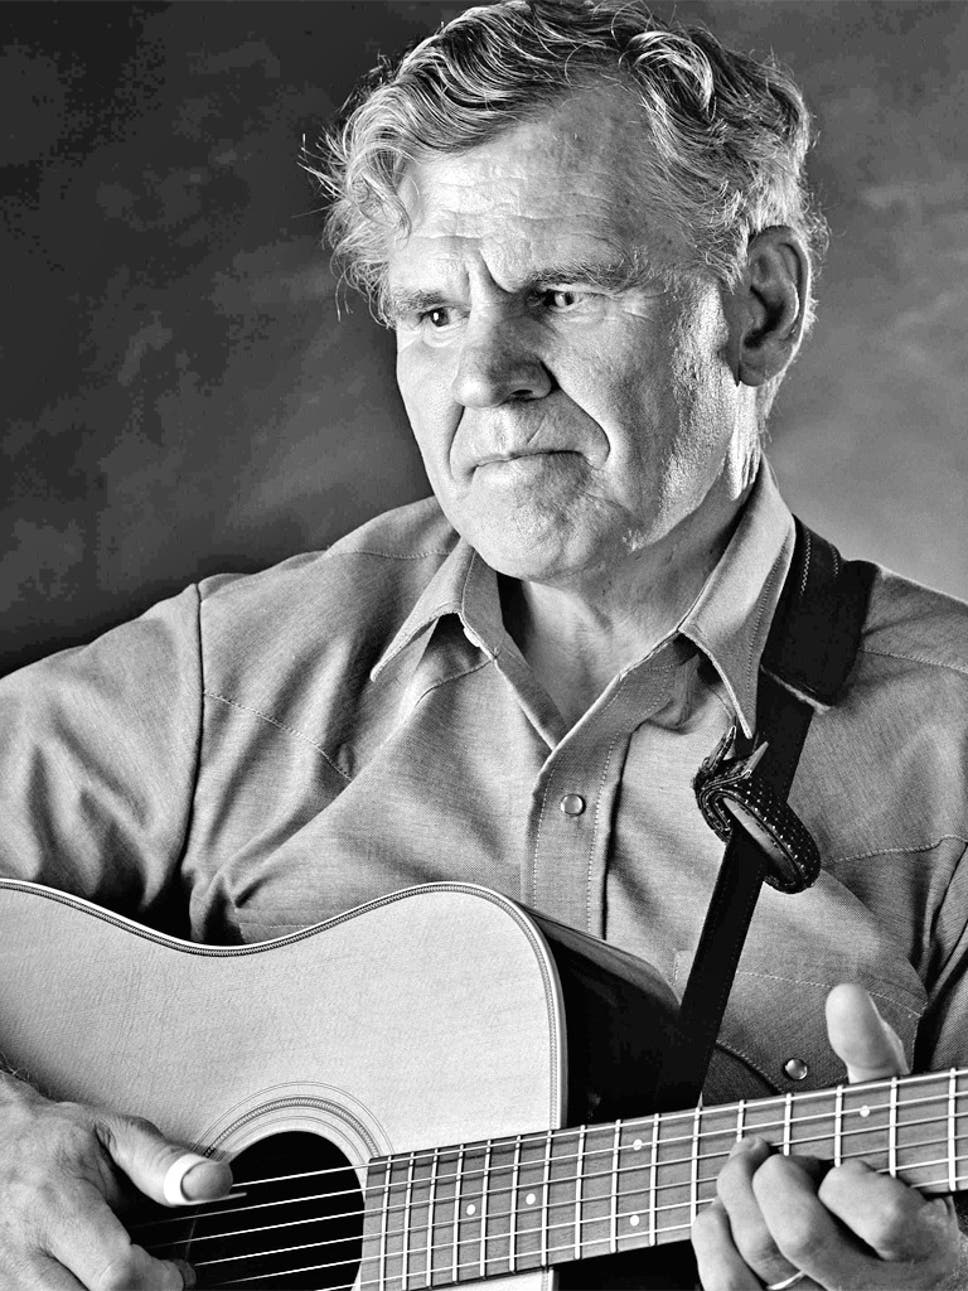 Doc Watson Guitarist And Banjo Player Who Influenced Generations Of